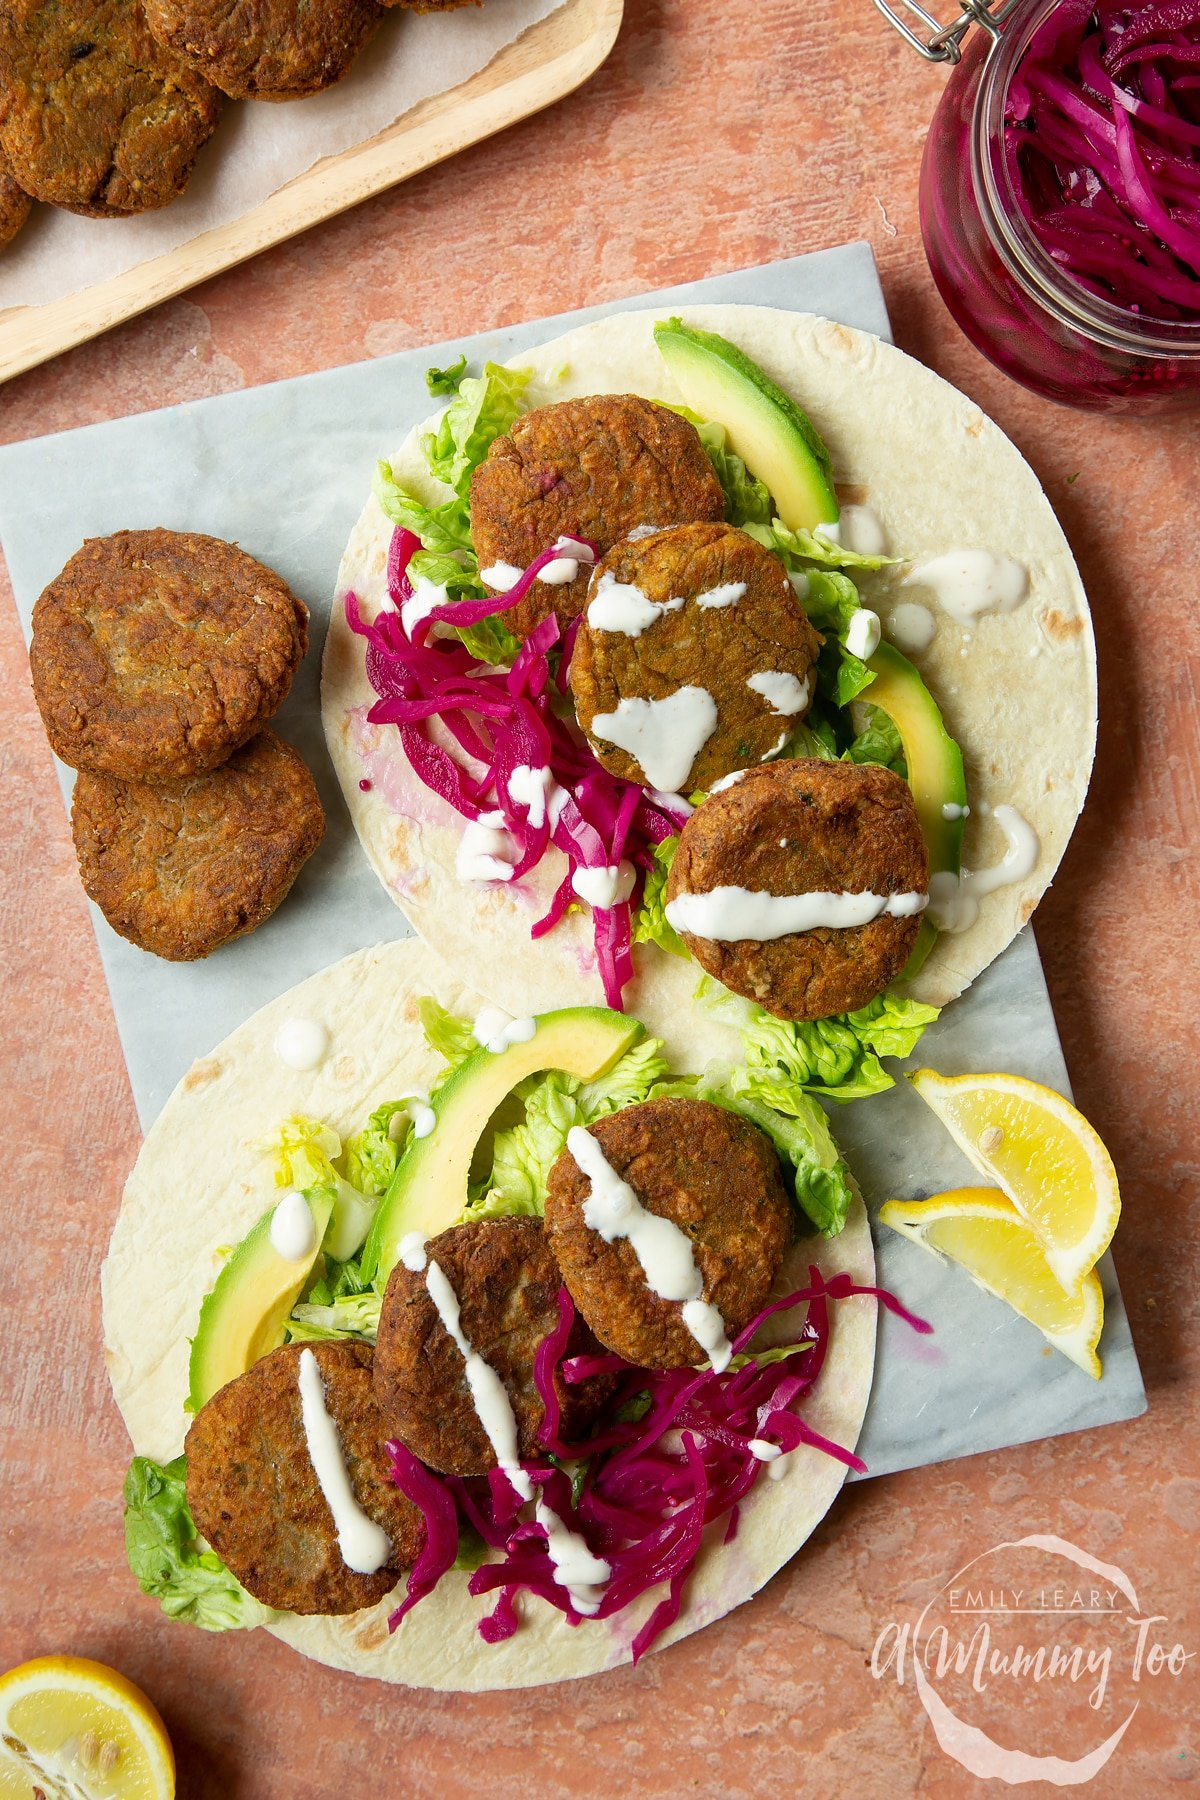 Two harissa falafel wraps arranged on a board with pickled cabbage and salad. Drizzled with tahini dressing.